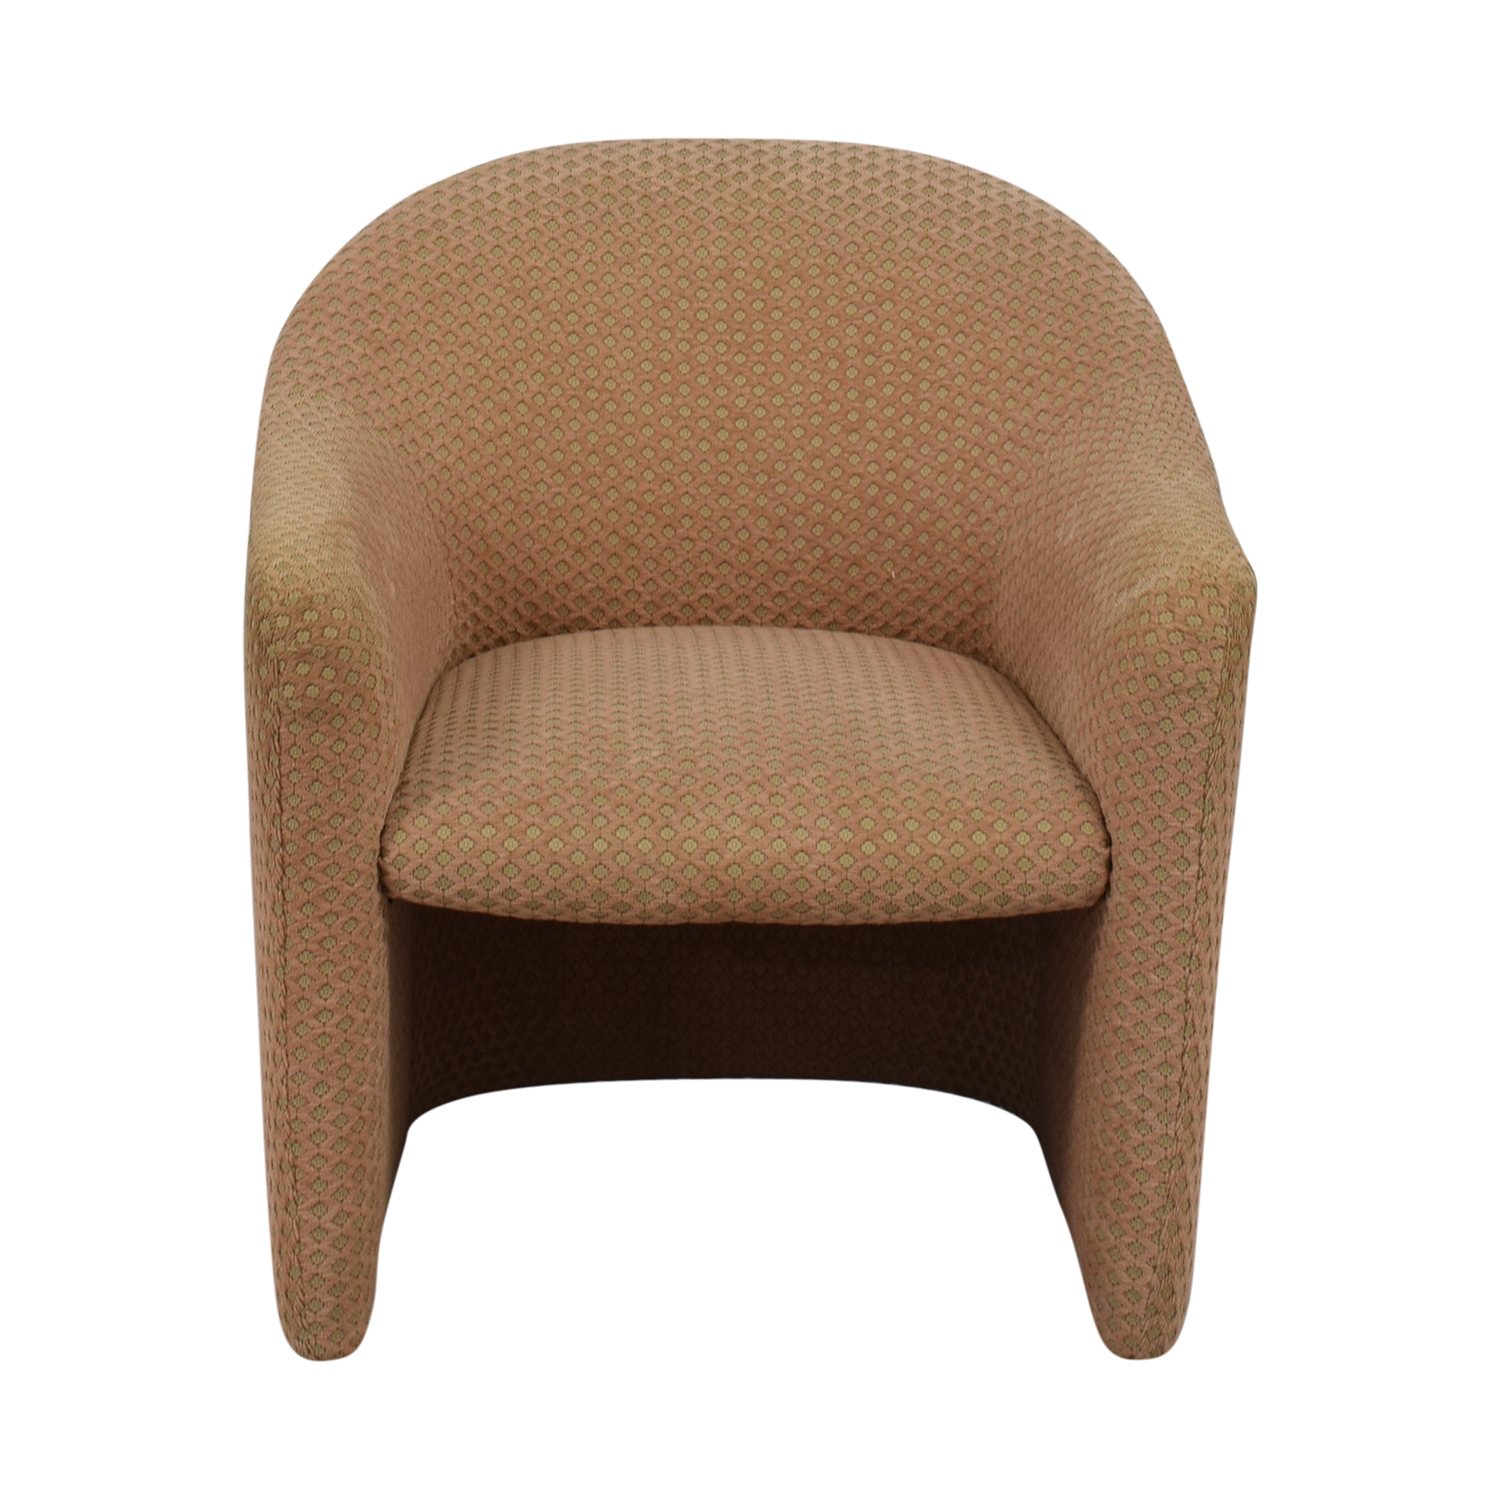 Gunlocke Company Gunlocke Company Dotted Accent Chair price